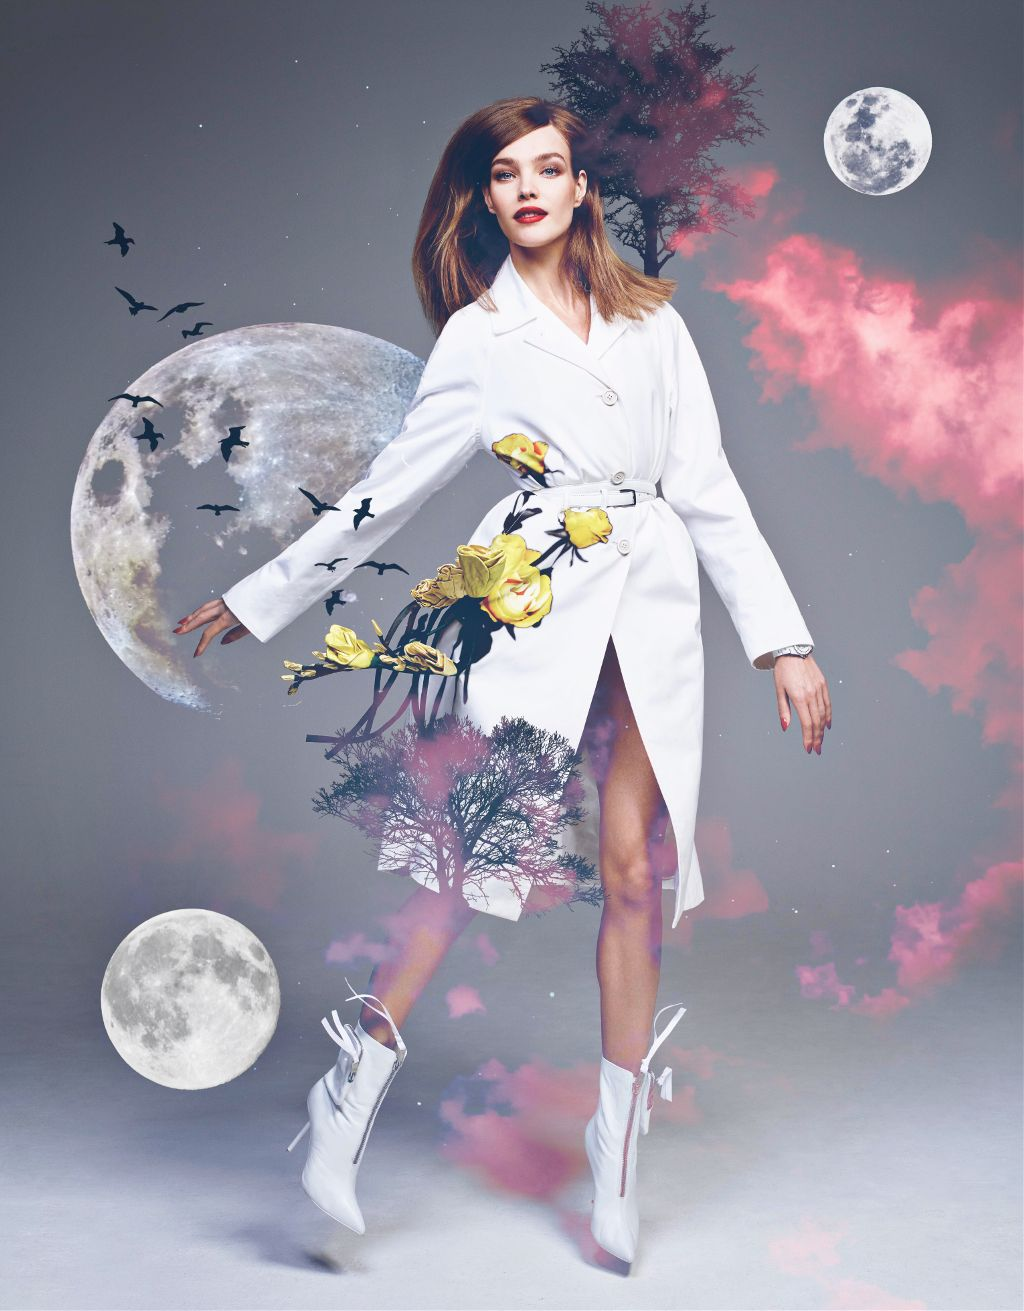 #freetoedit  This is my submission for a challenge! Hope you enjoy it:)    #design #moon #cloud #sky #nature #model #china #bird #edit #art #interesting #white #galaxy #night #people #summer #pretty #girl #cool